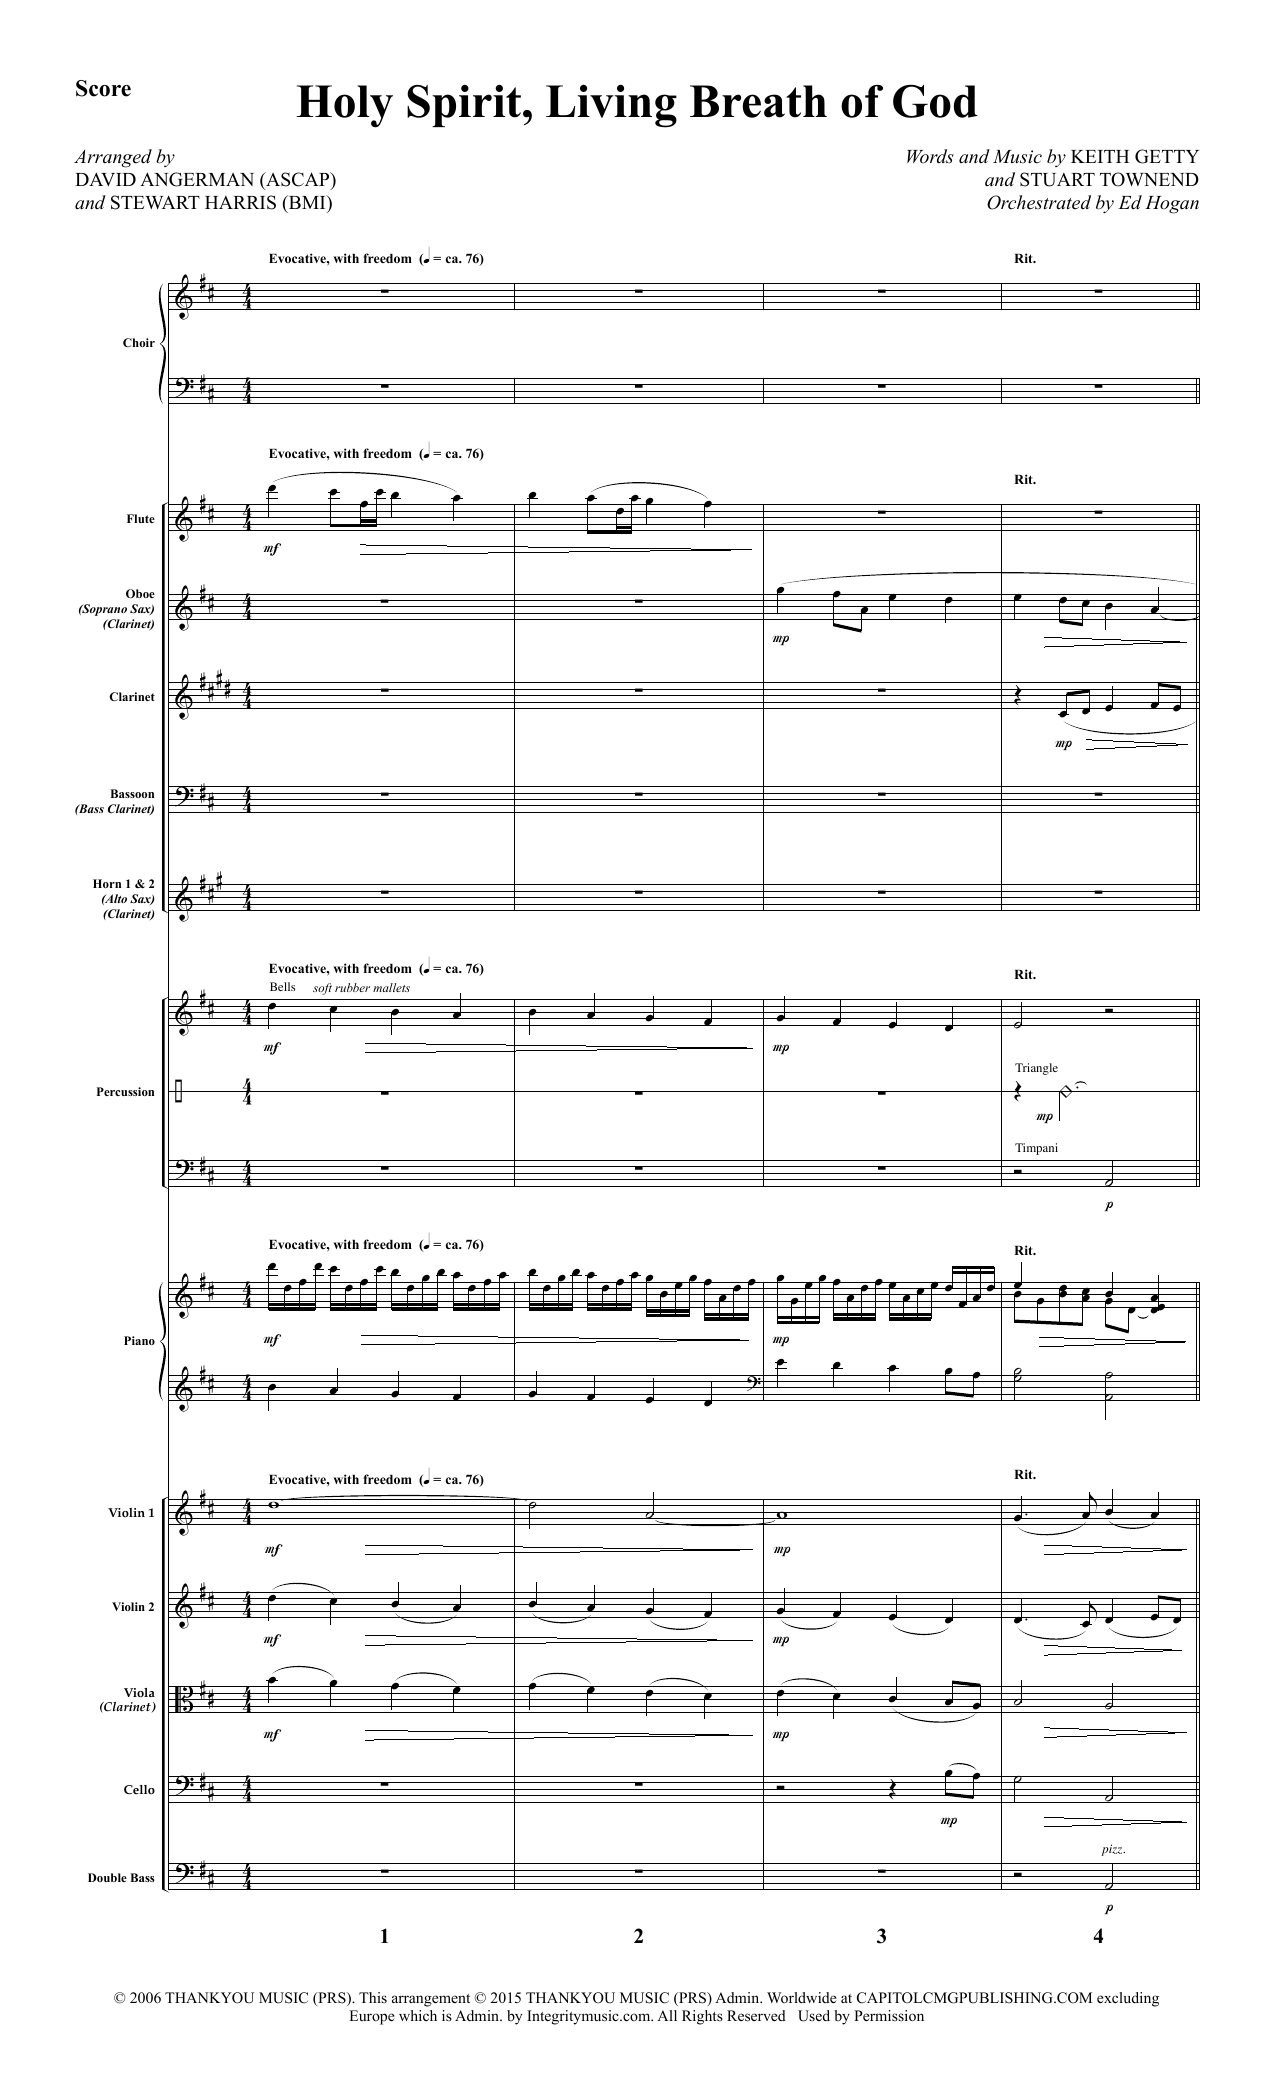 Holy Spirit, Living Breath of God - Full Score Sheet Music